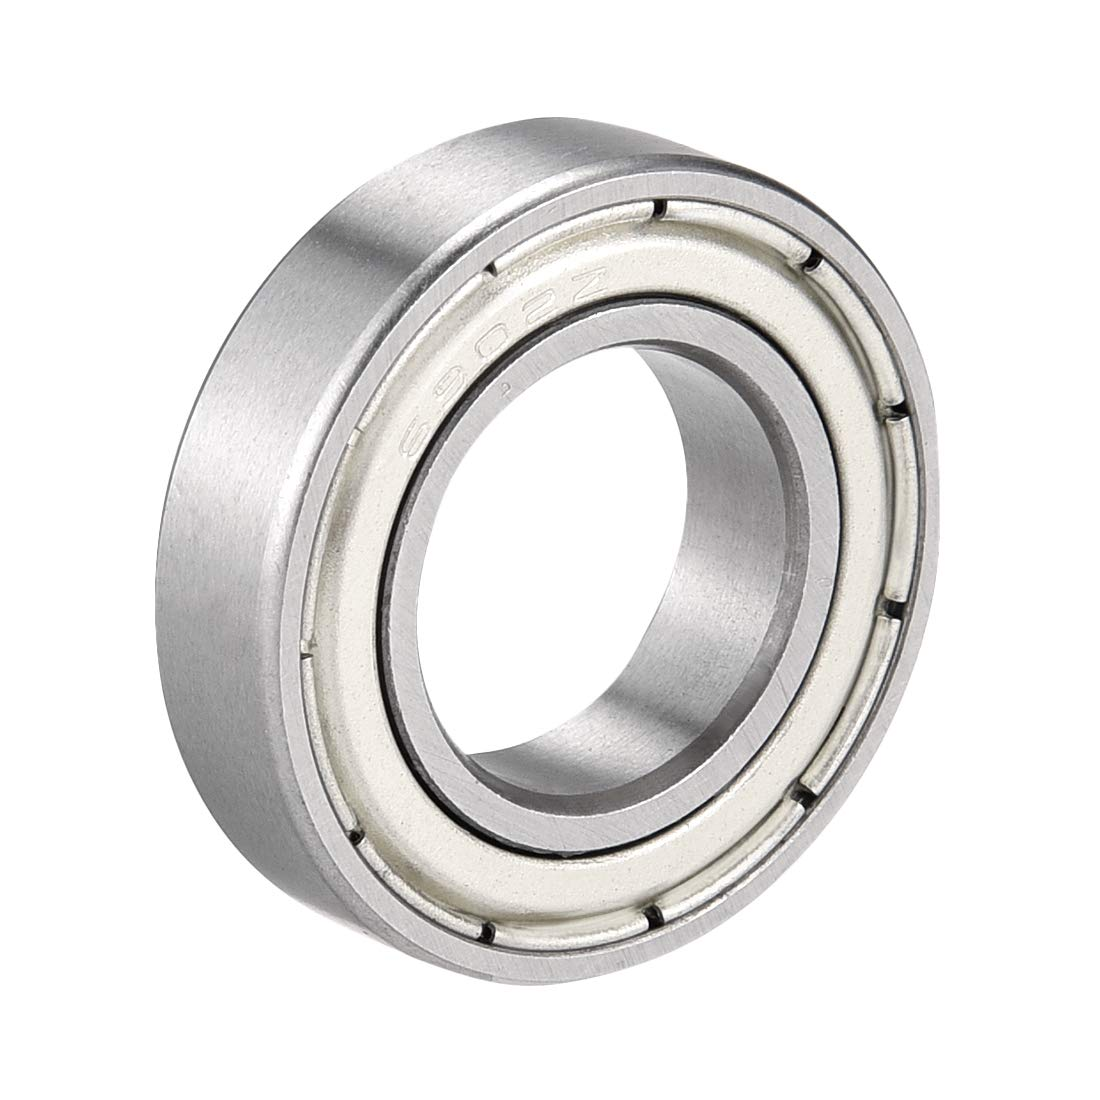 sourcing map 6802ZZ Deep Groove Ball Bearing Double Shield 6802-2Z 1060802 15mm x 24mm x 5mm Chrome Steel Bearings Pack of 10